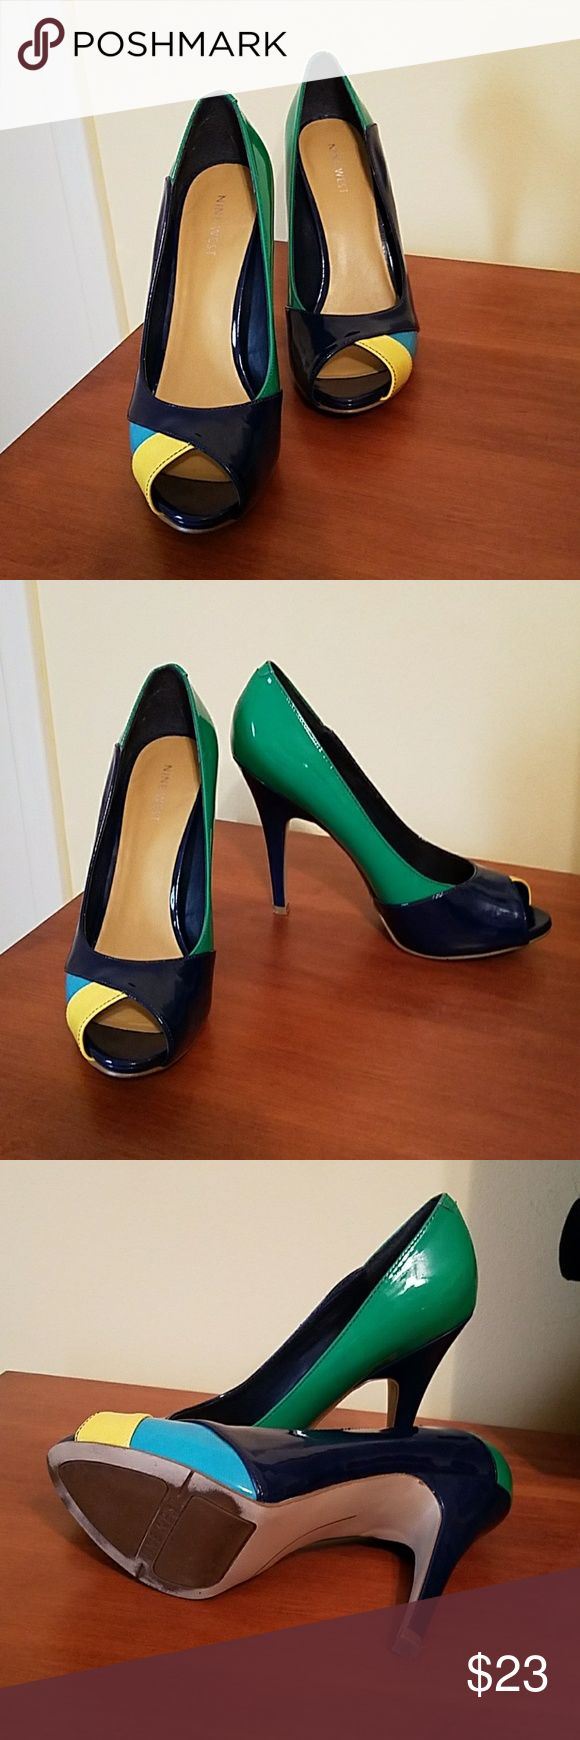 Nine West color block peep toe pumps Gently worn color block blue, yellow, green and turquoise peep toe pump Nine West Shoes Heels